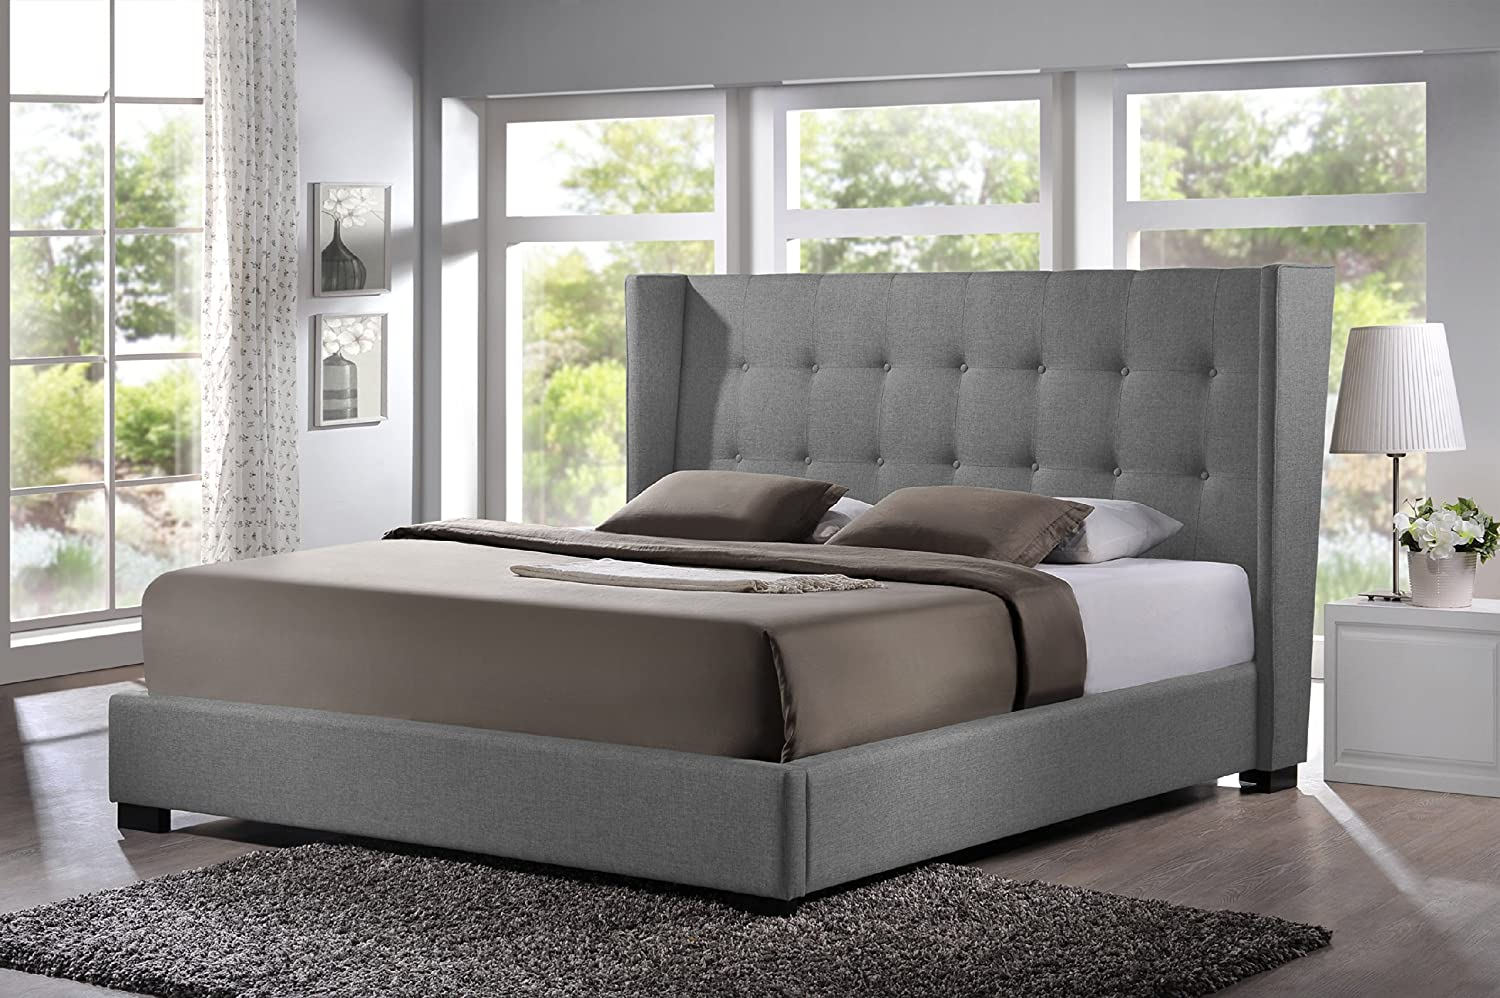 amazoncom baxton studio bbt6386 king grey de800 b 62 favela linen modern bed with upholstered headboard king grey kitchen dining